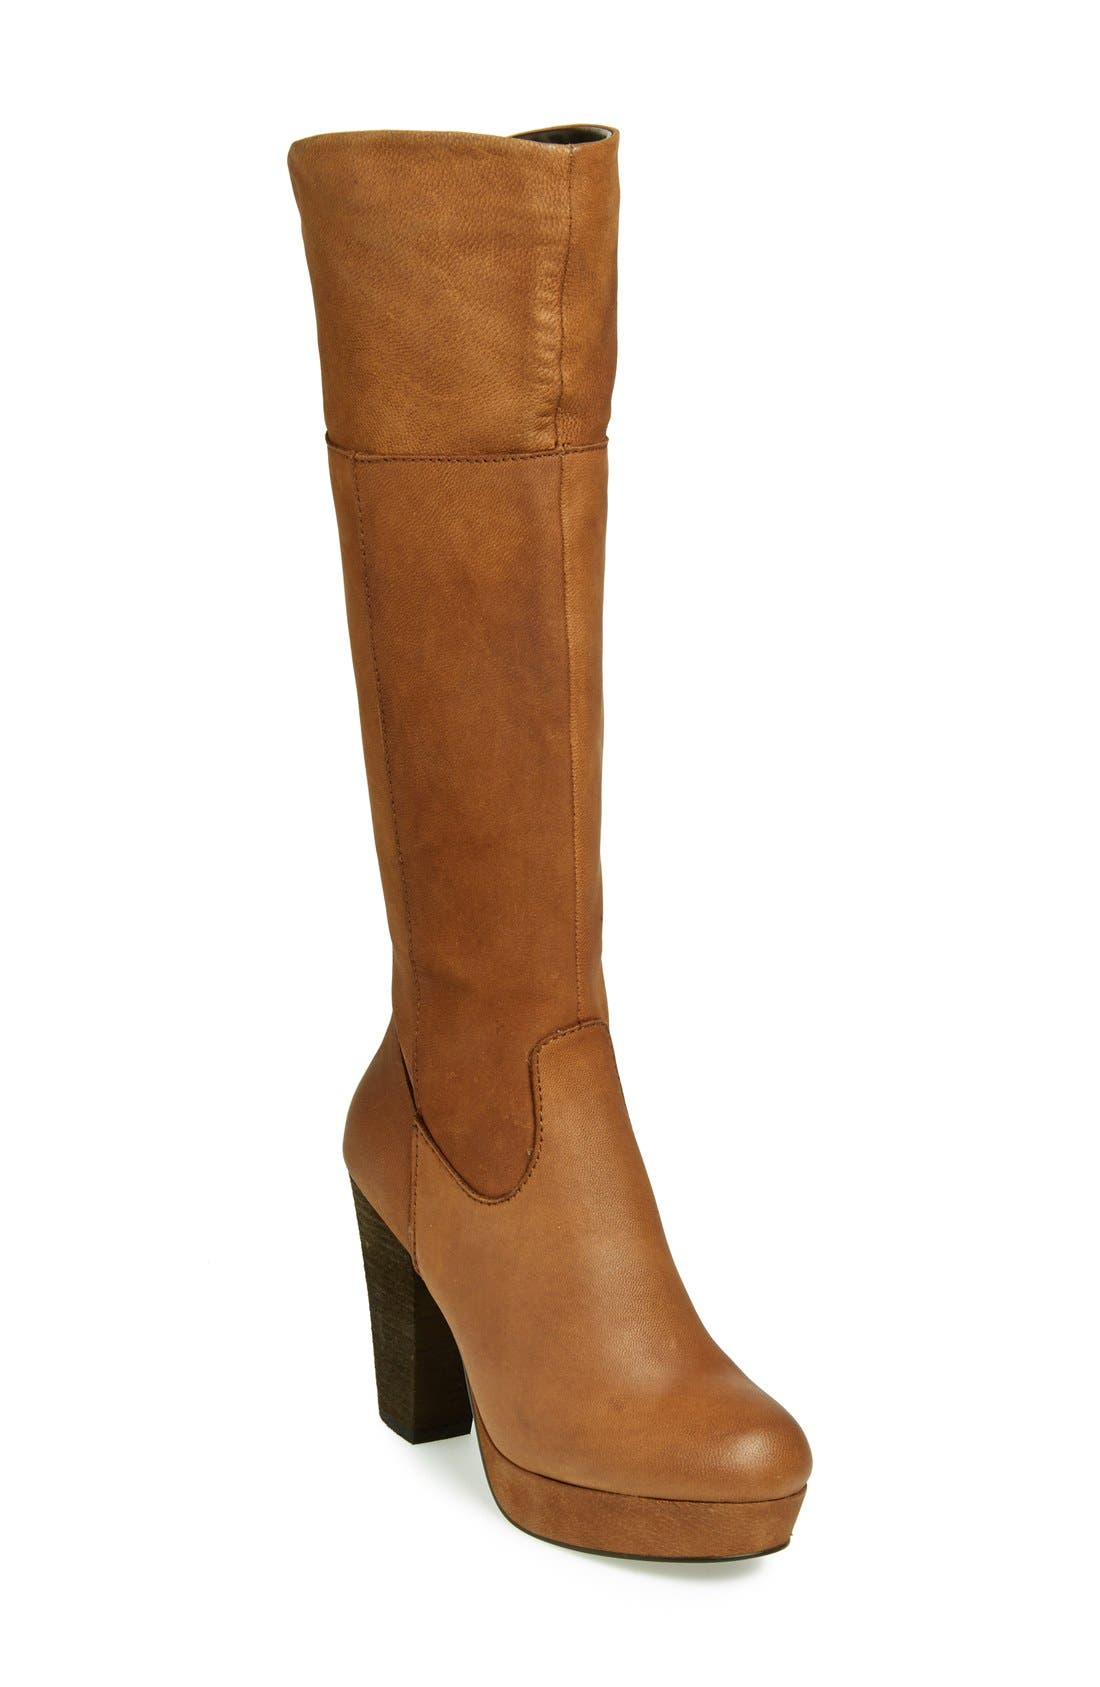 Alternate Image 1 Selected - Steve Madden 'Rackey' Leather Platform Boot (Women)